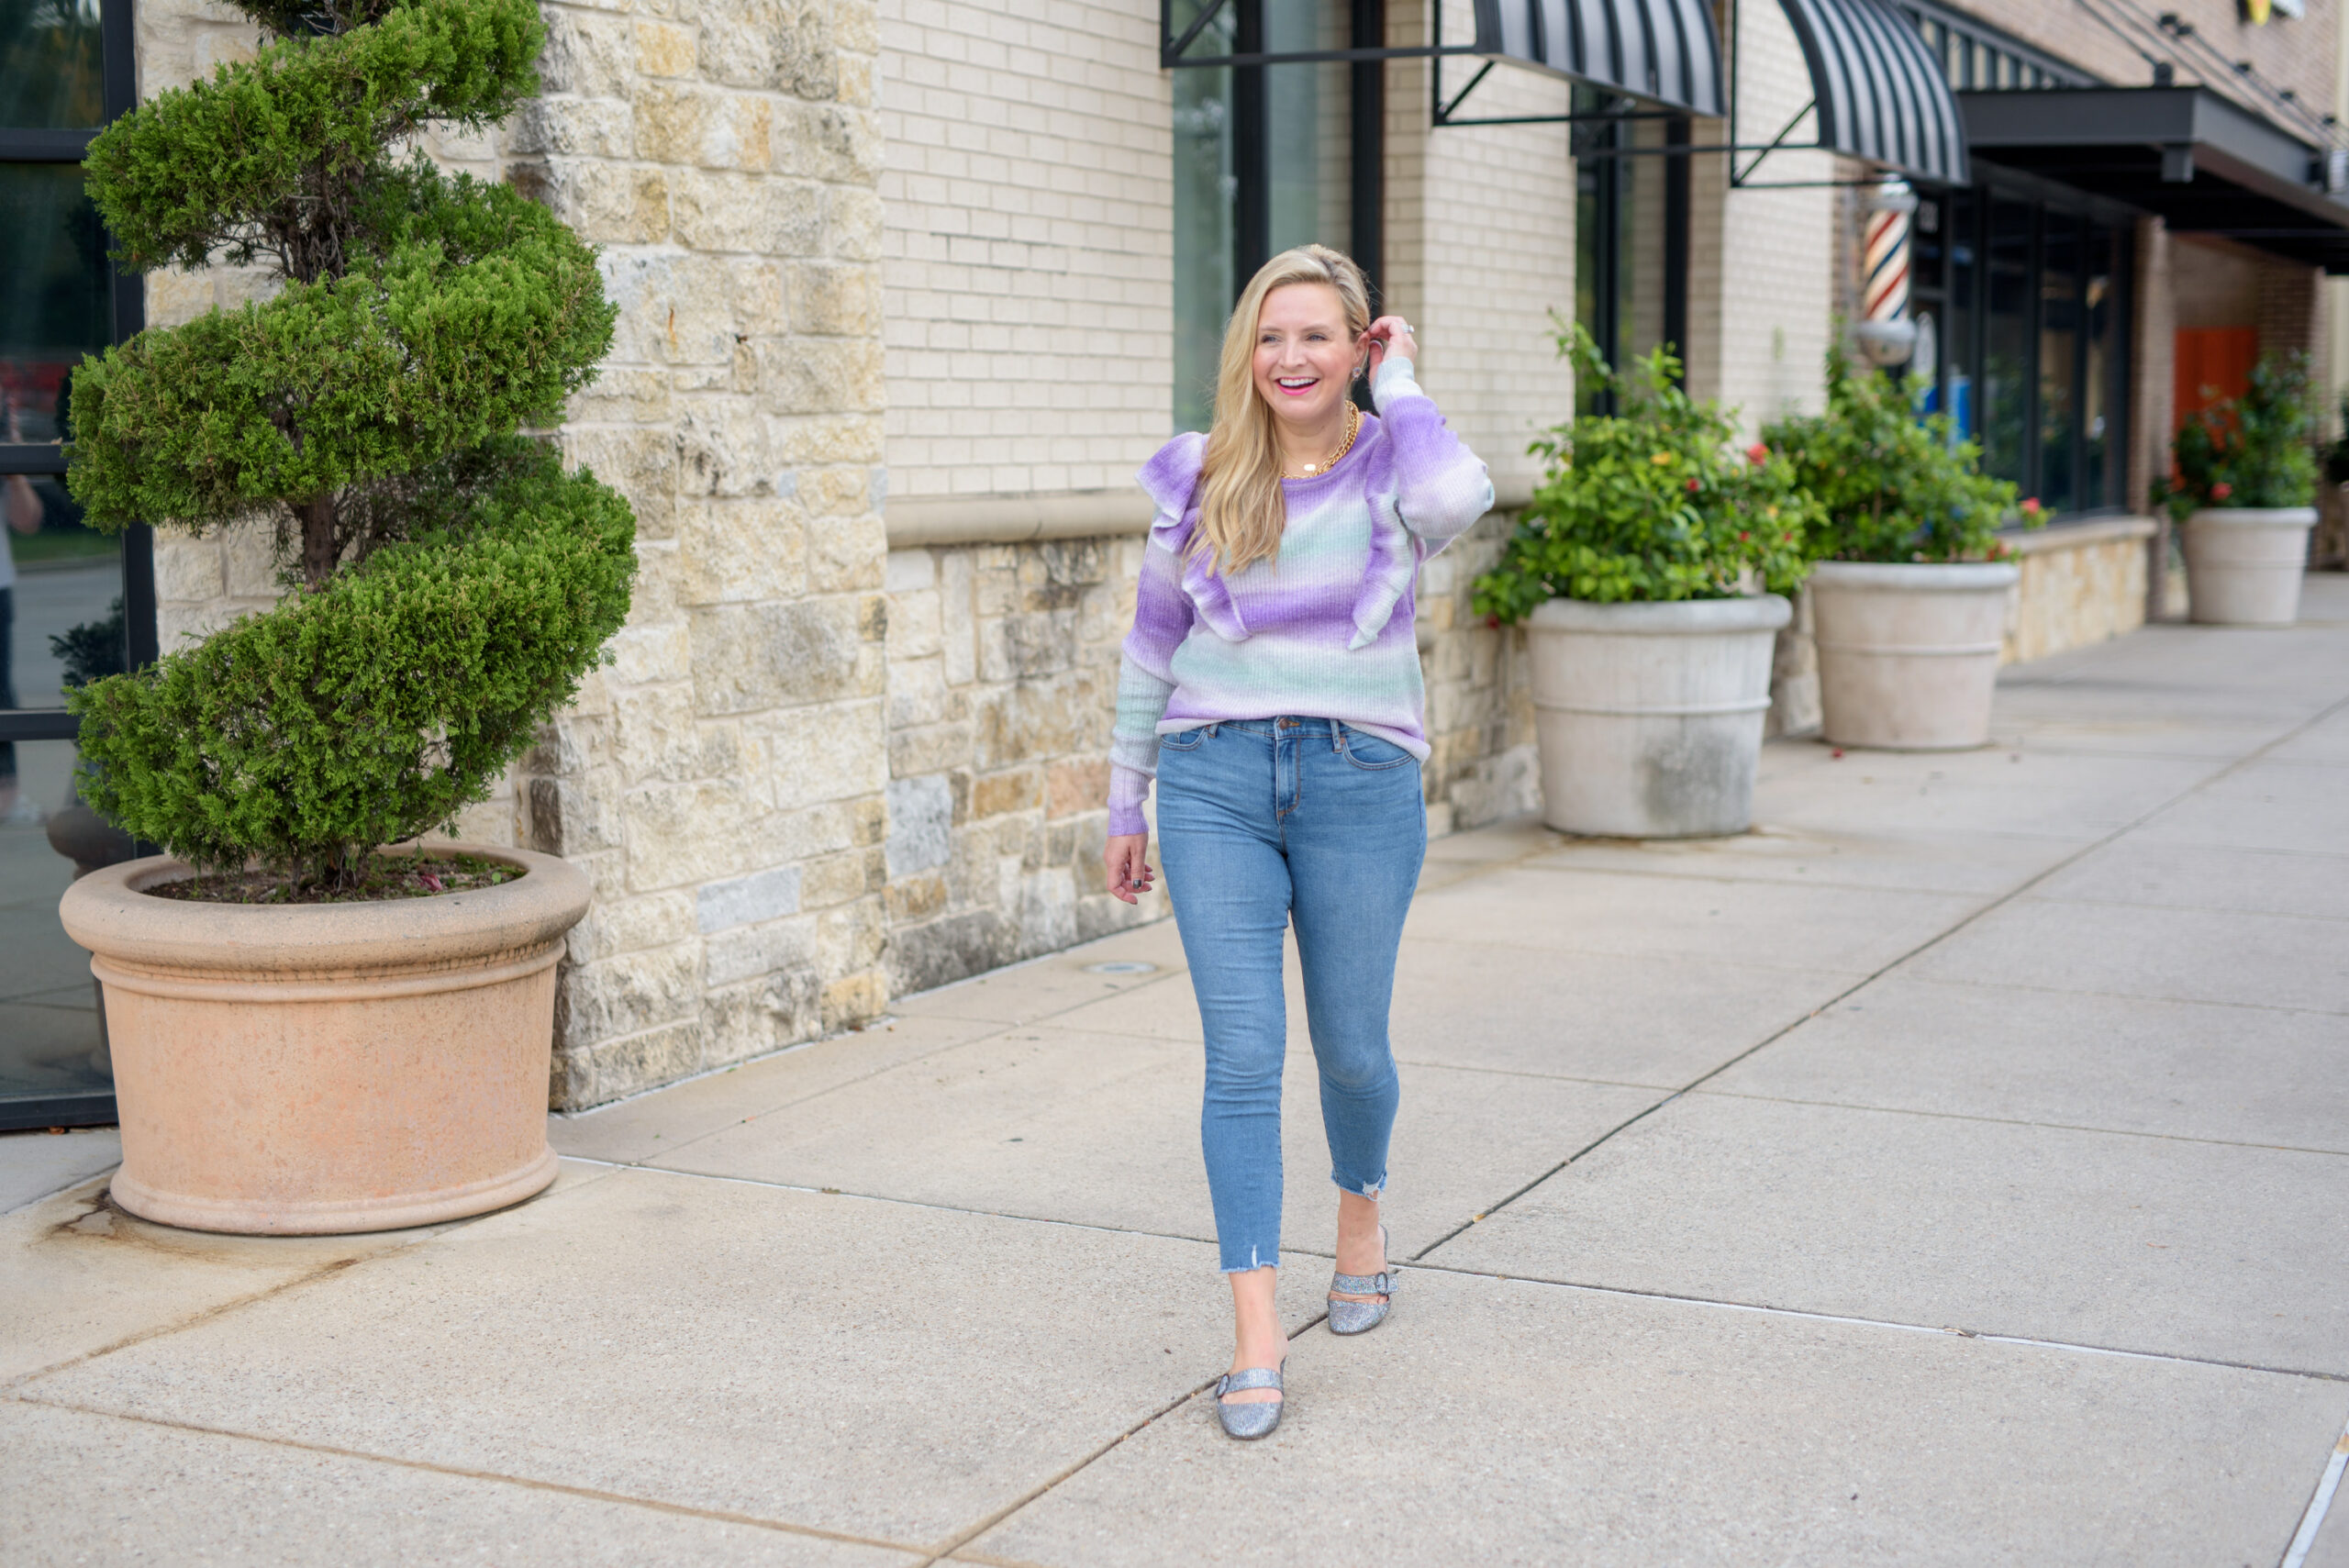 Walmart Womens Clothes by popular Houston fashion blog, Fancy Ashley: image of a woman wearing a Walmart Scoop Women's Space Dye Sweater with Ruffle Trim and Walmart No Boundaries Juniors' Mom Jeans.